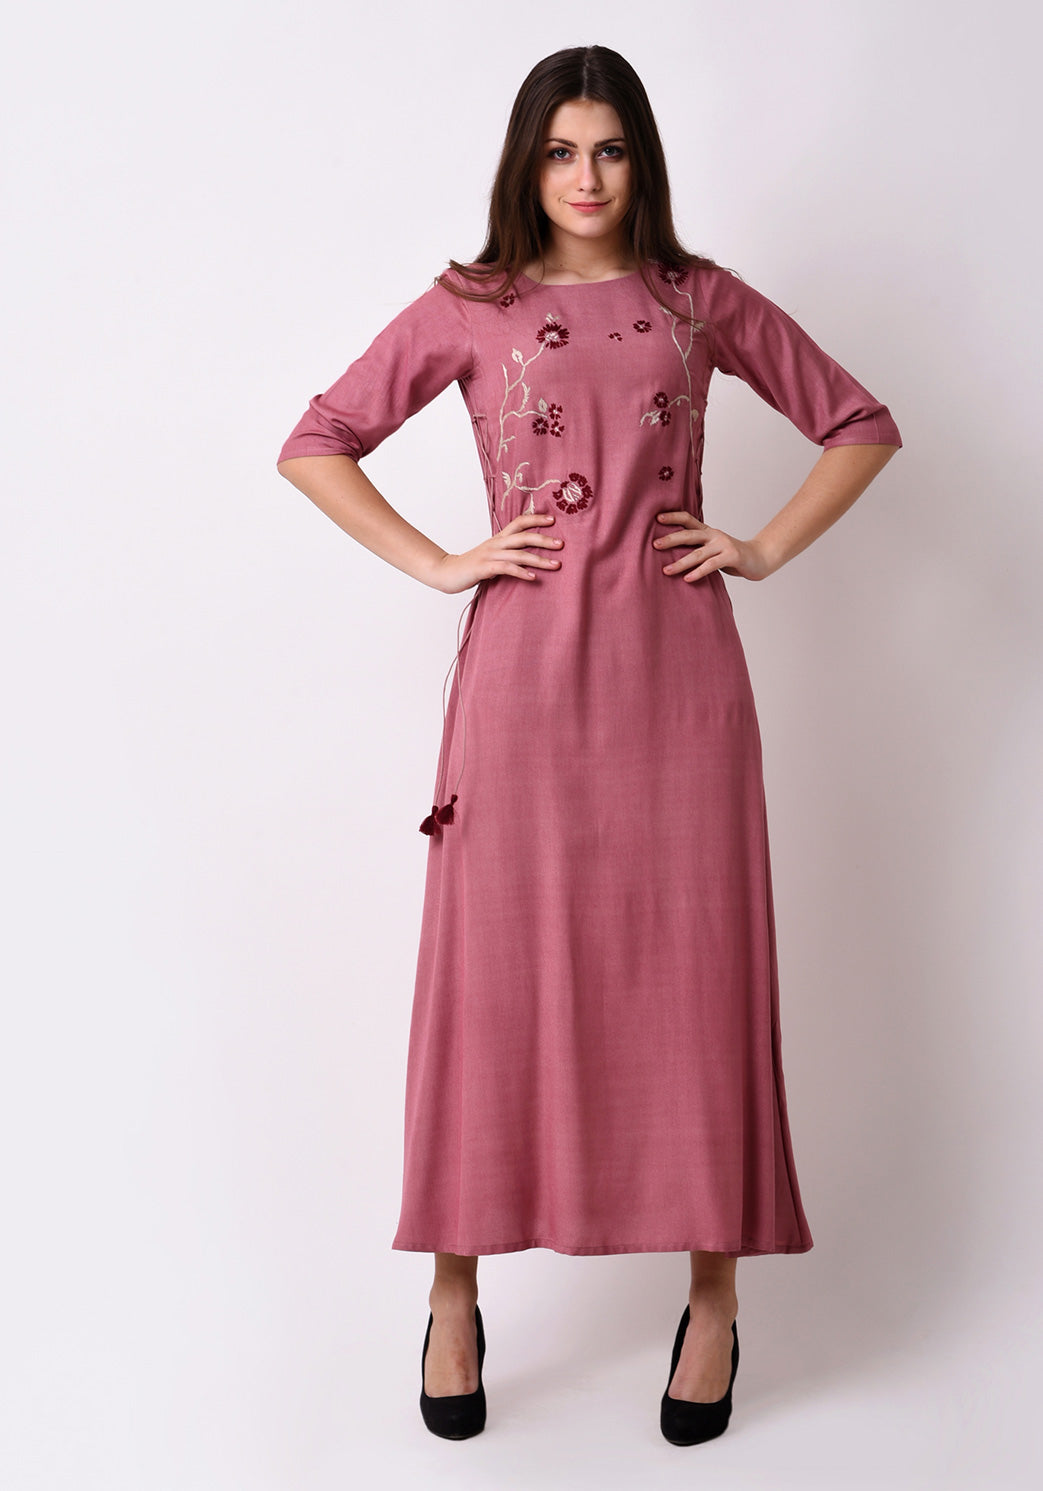 Elegant Side Tie-up Maxi Dress - Mauve